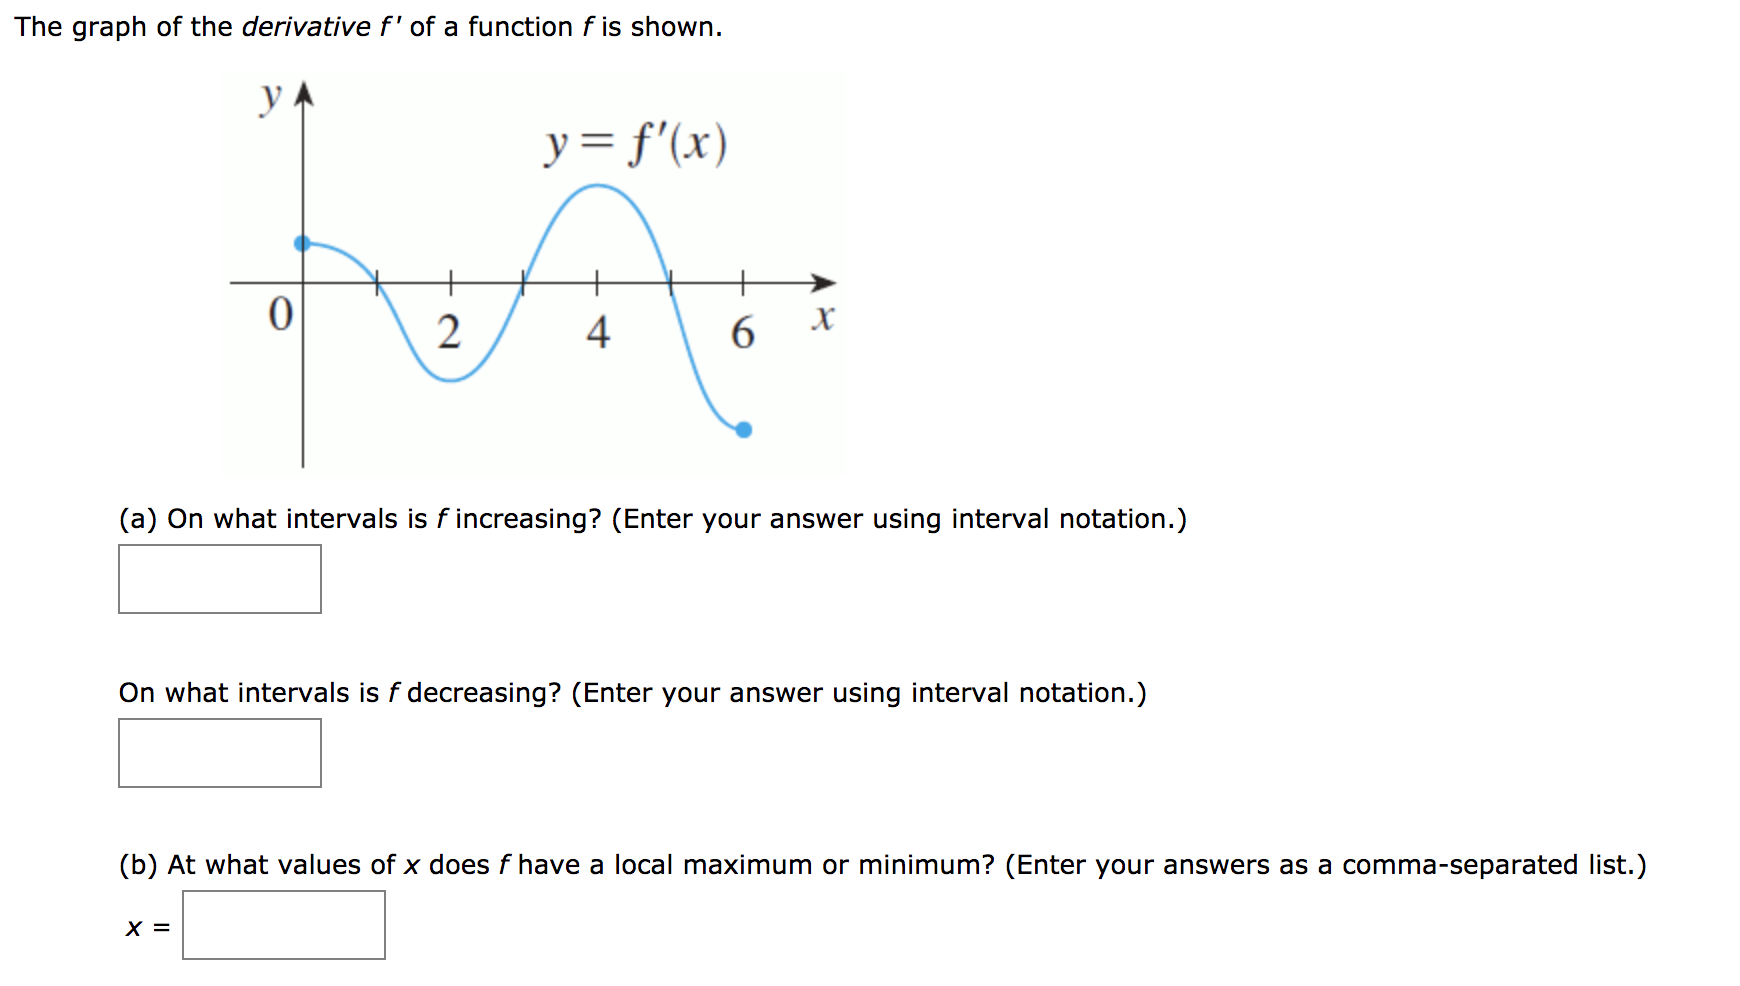 The graph of the derivative f' of a function f is shown. y= f'(x) х (a) On what intervals is f increasing? (Enter your answer using interval notation.) On what intervals is f decreasing? (Enter your answer using interval notation.) (b) At what values of x does f have a local maximum or minimum? (Enter your answers as a comma-separated list.) 4.